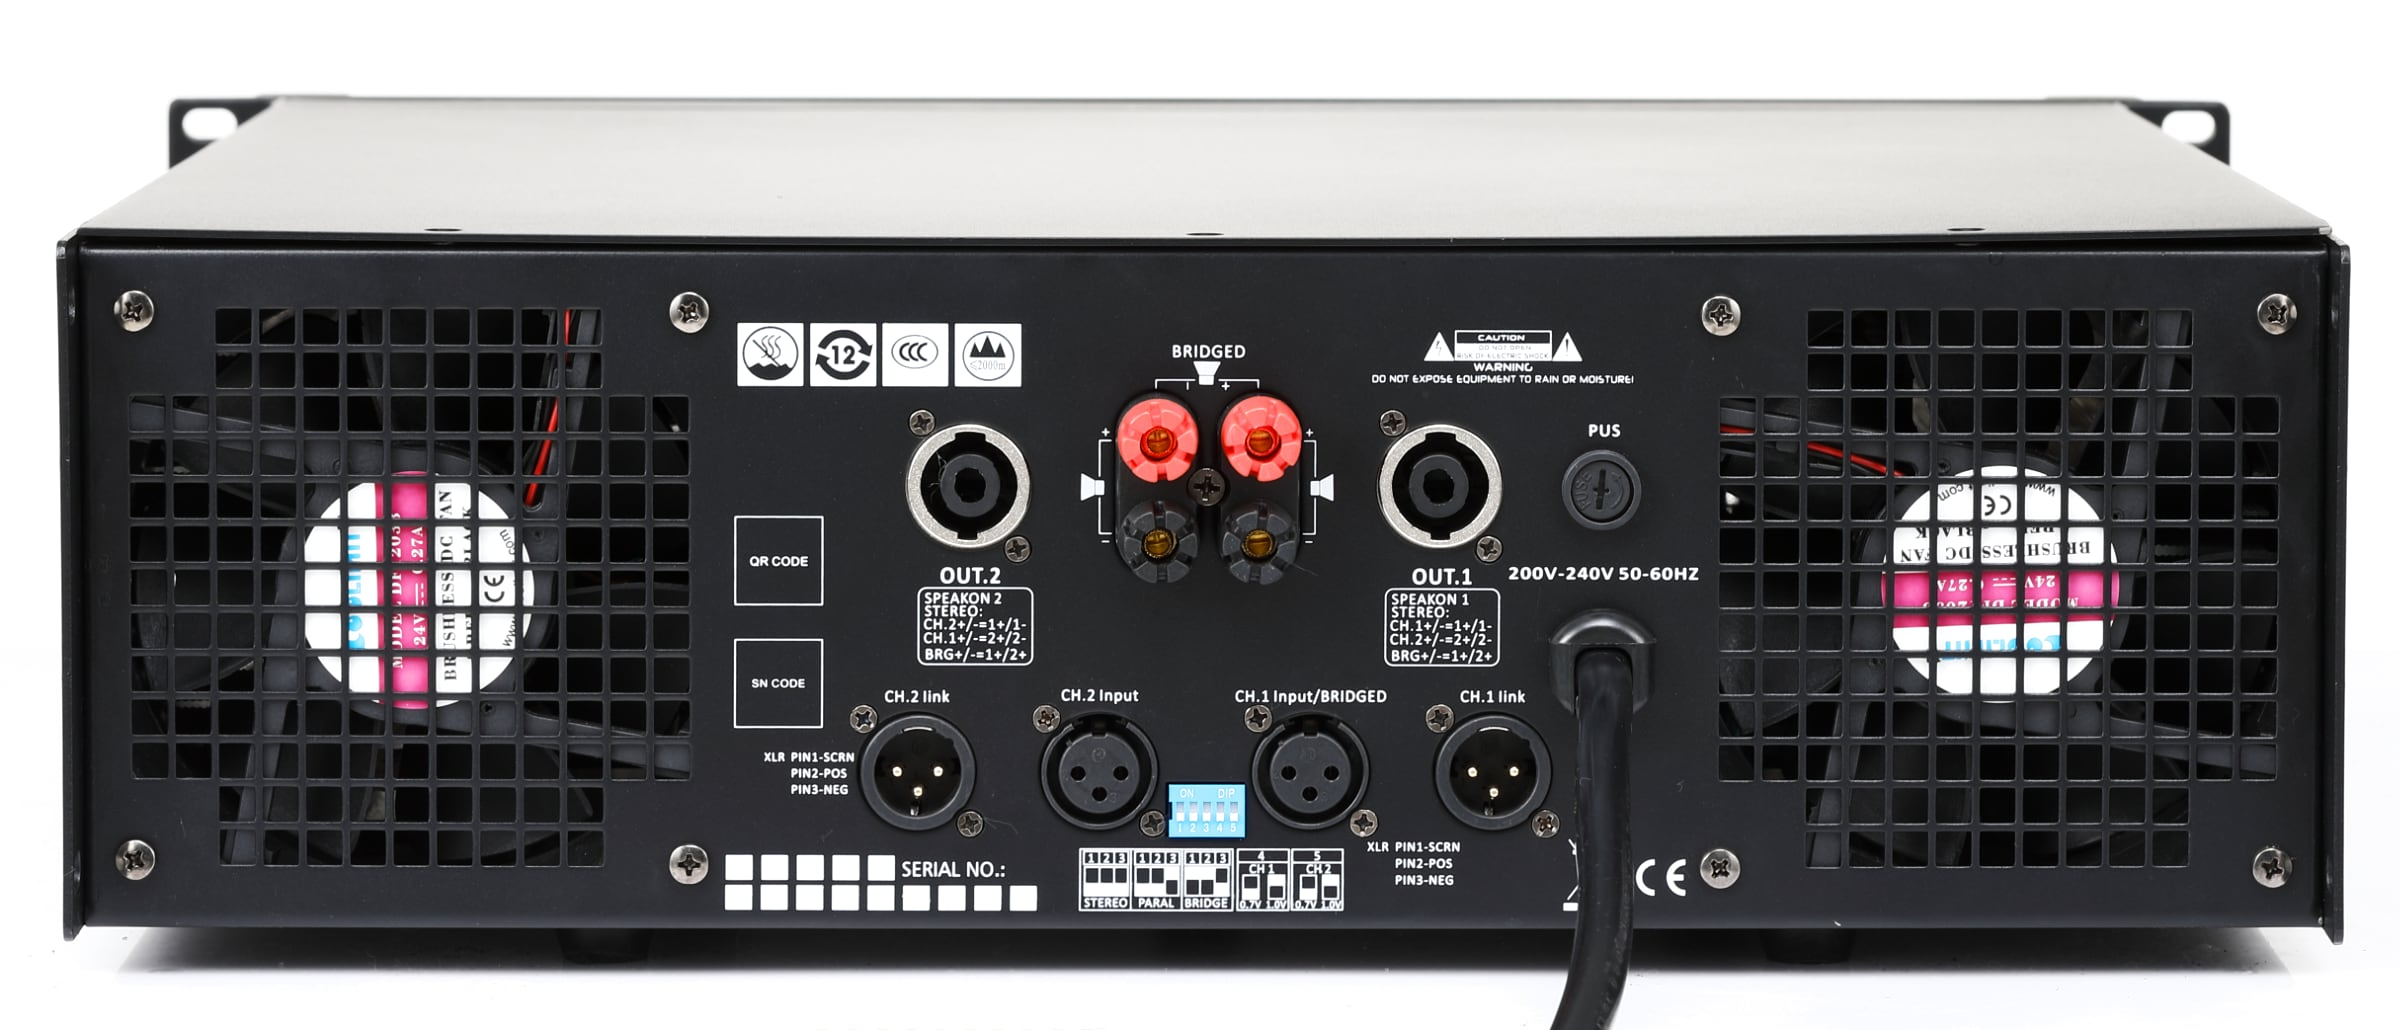 Công suất AAP DX-18002